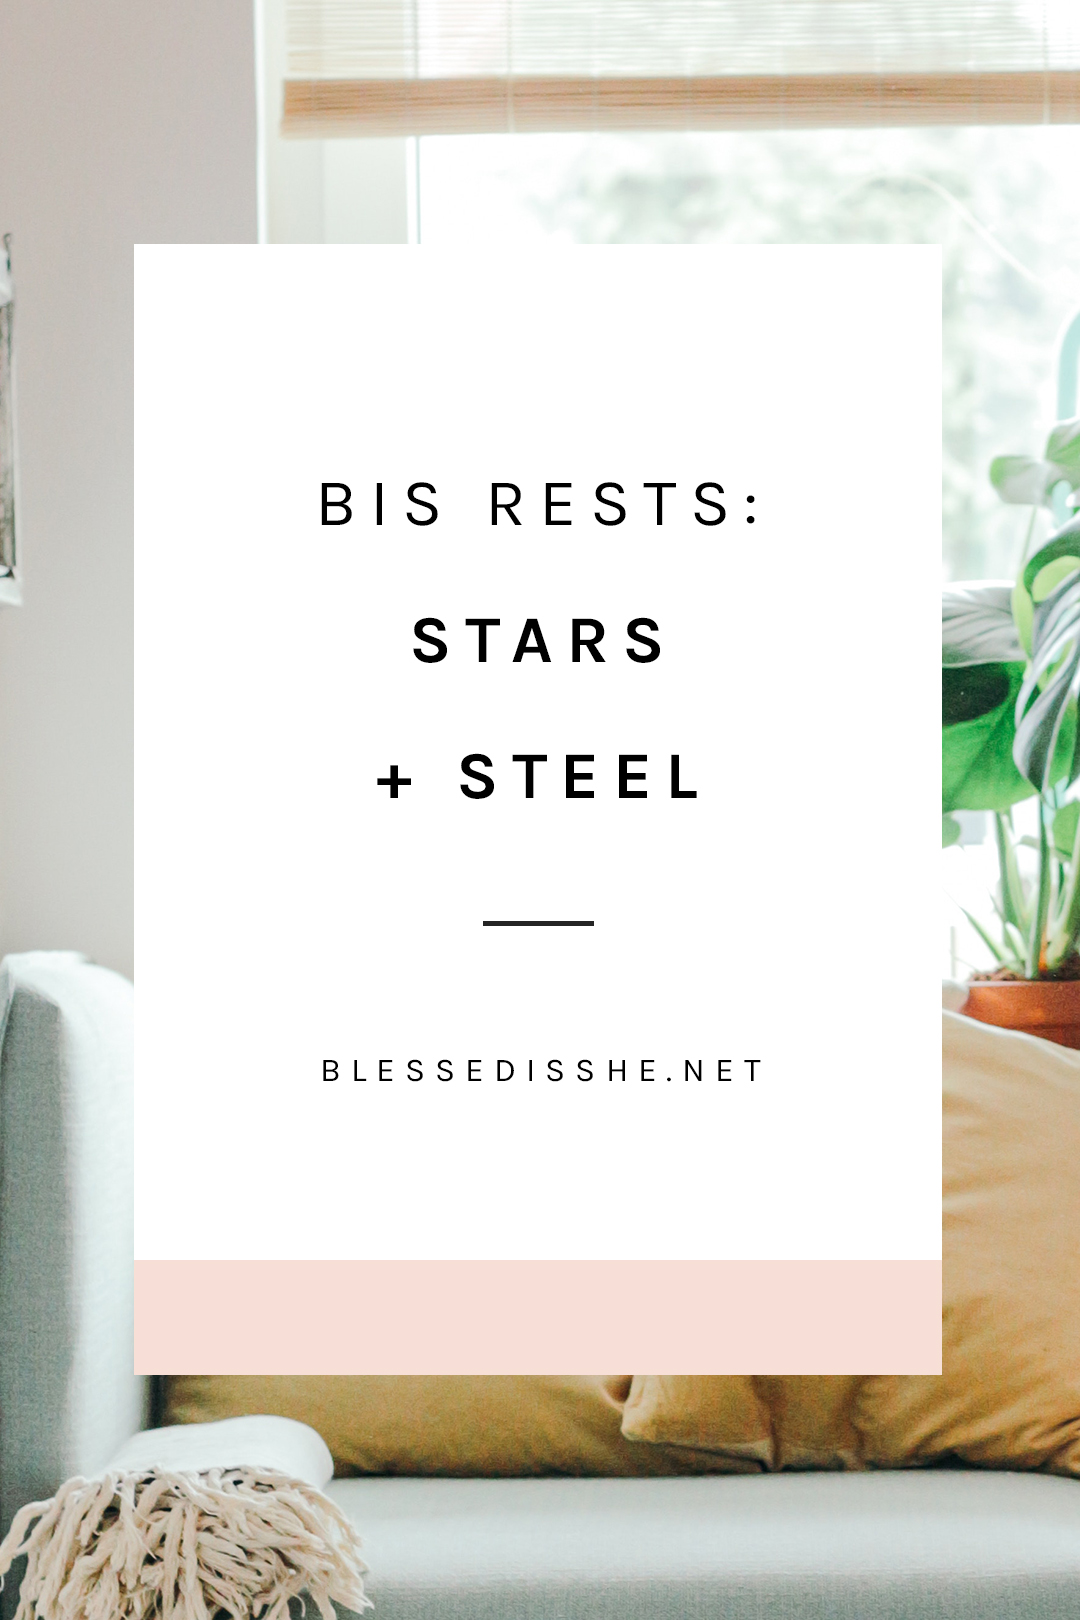 bis rests stars + steel